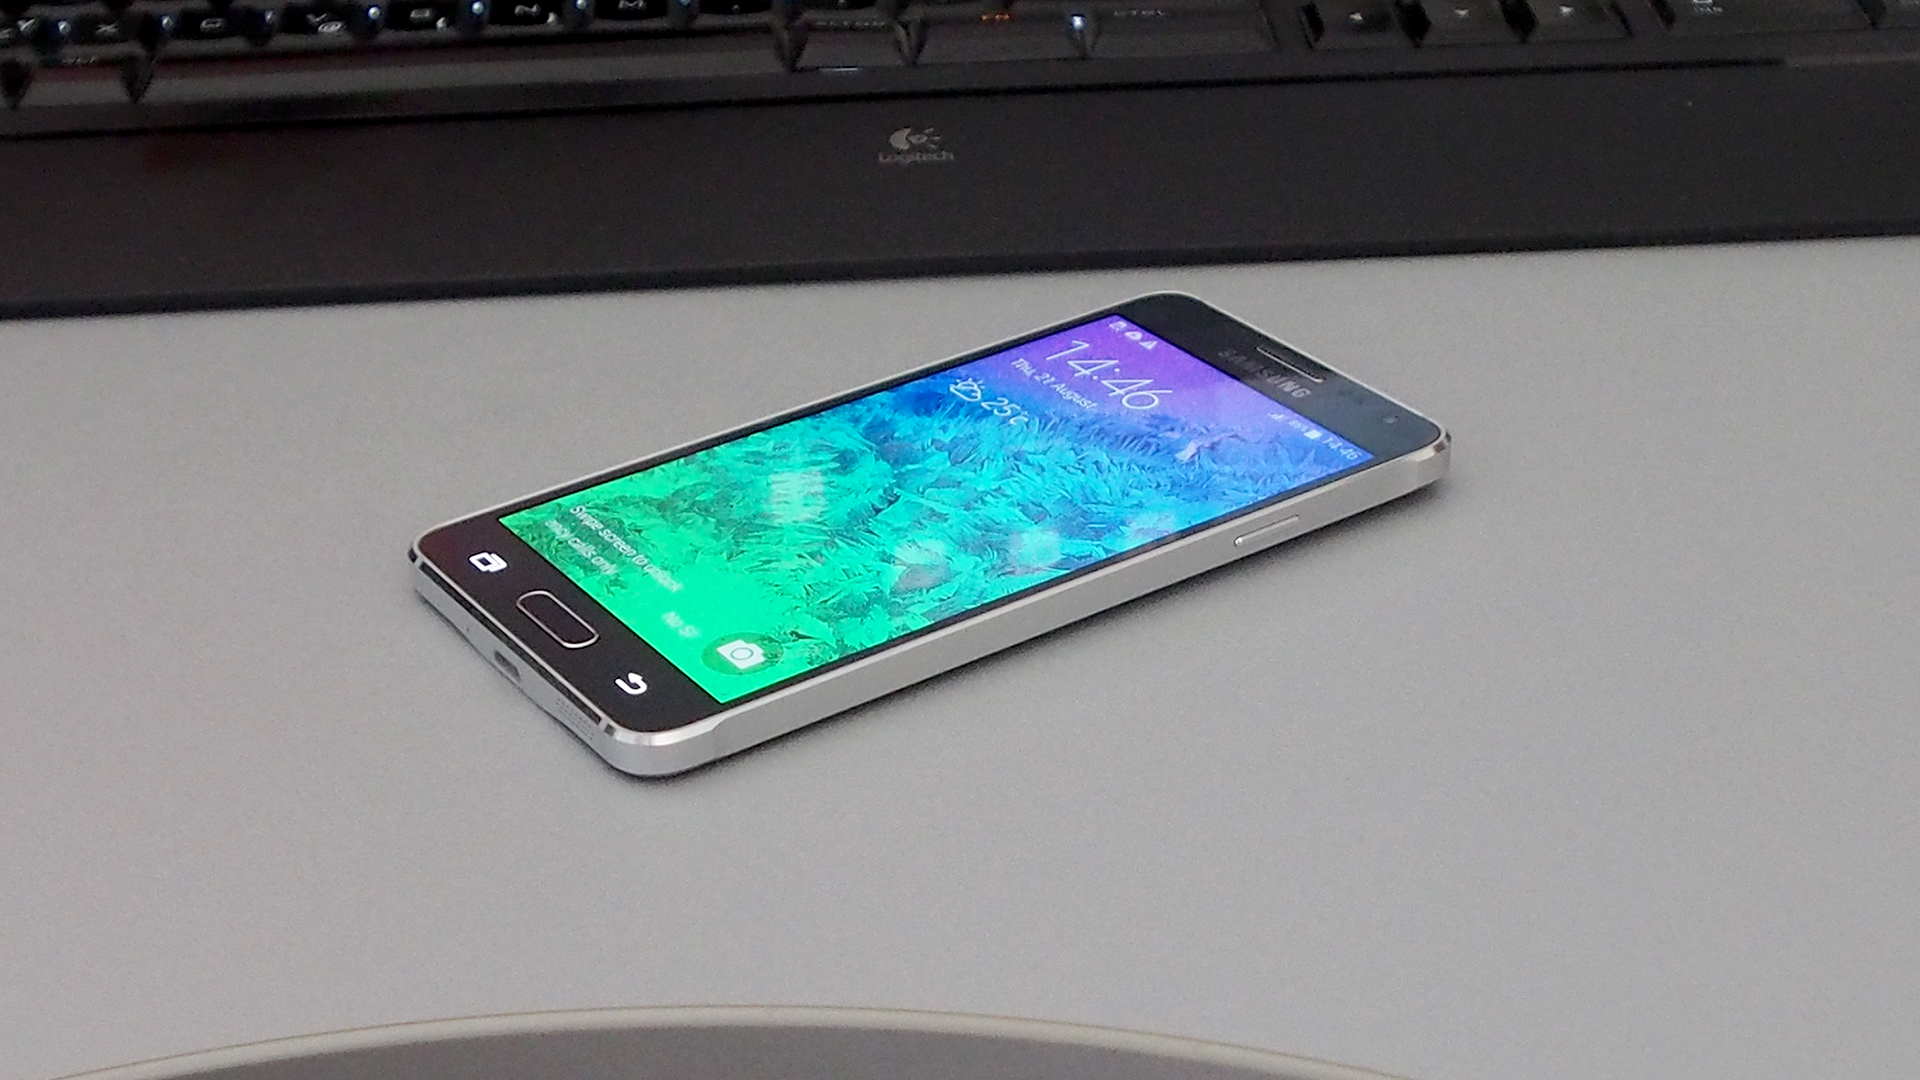 samsung galaxy alpha preview on the table